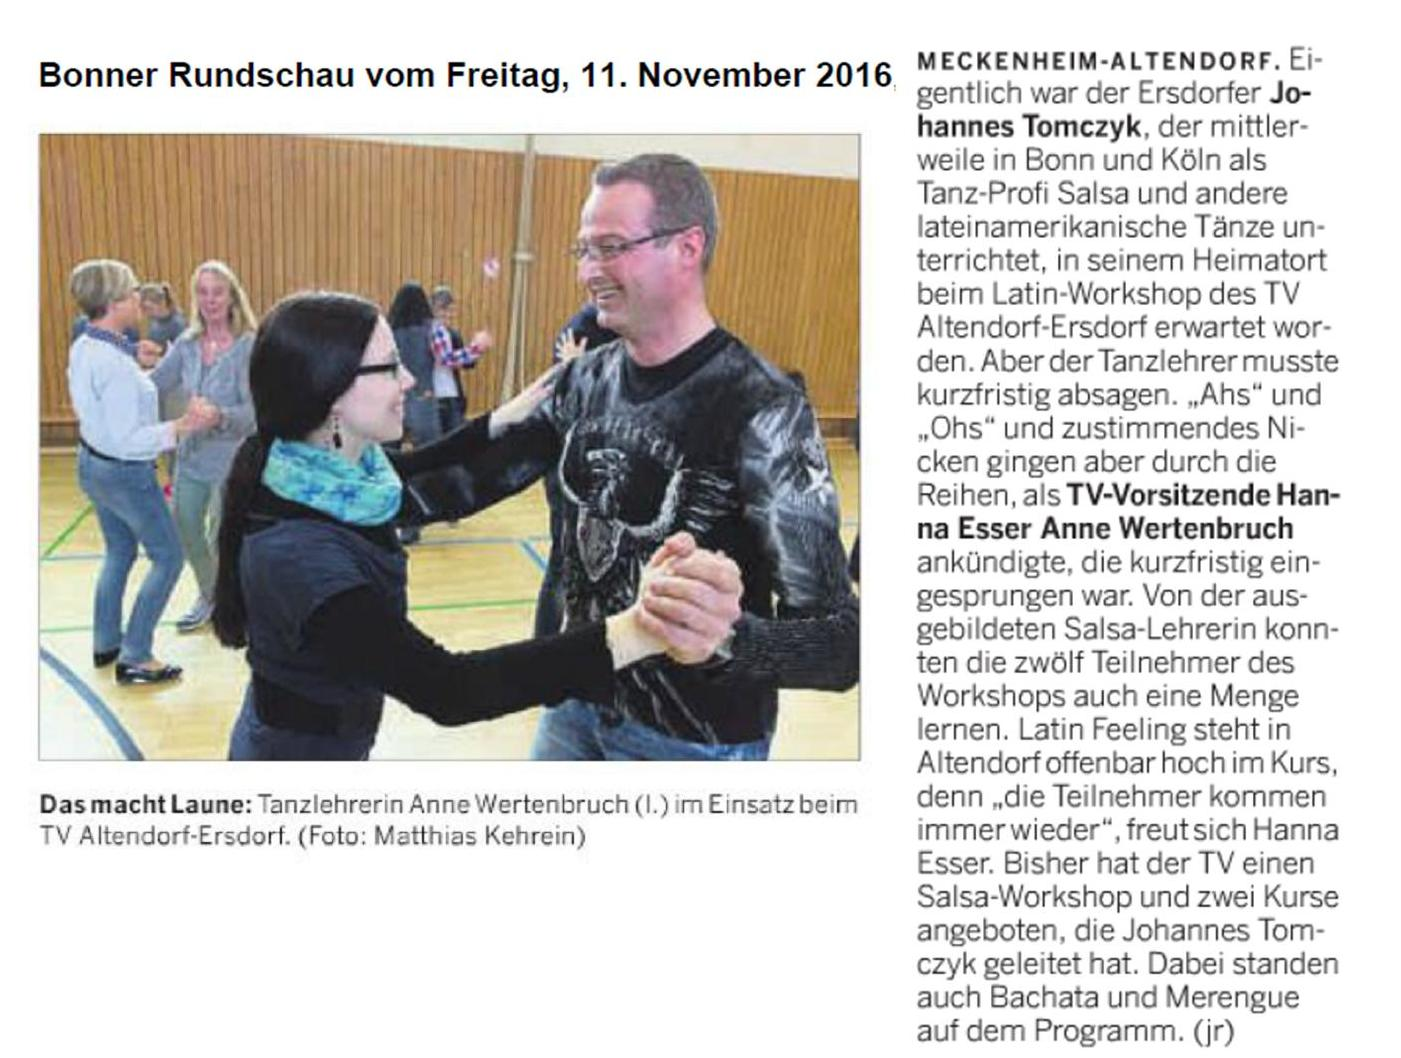 artikel bonner rundschau 11.11.2016 workshop latin feeling